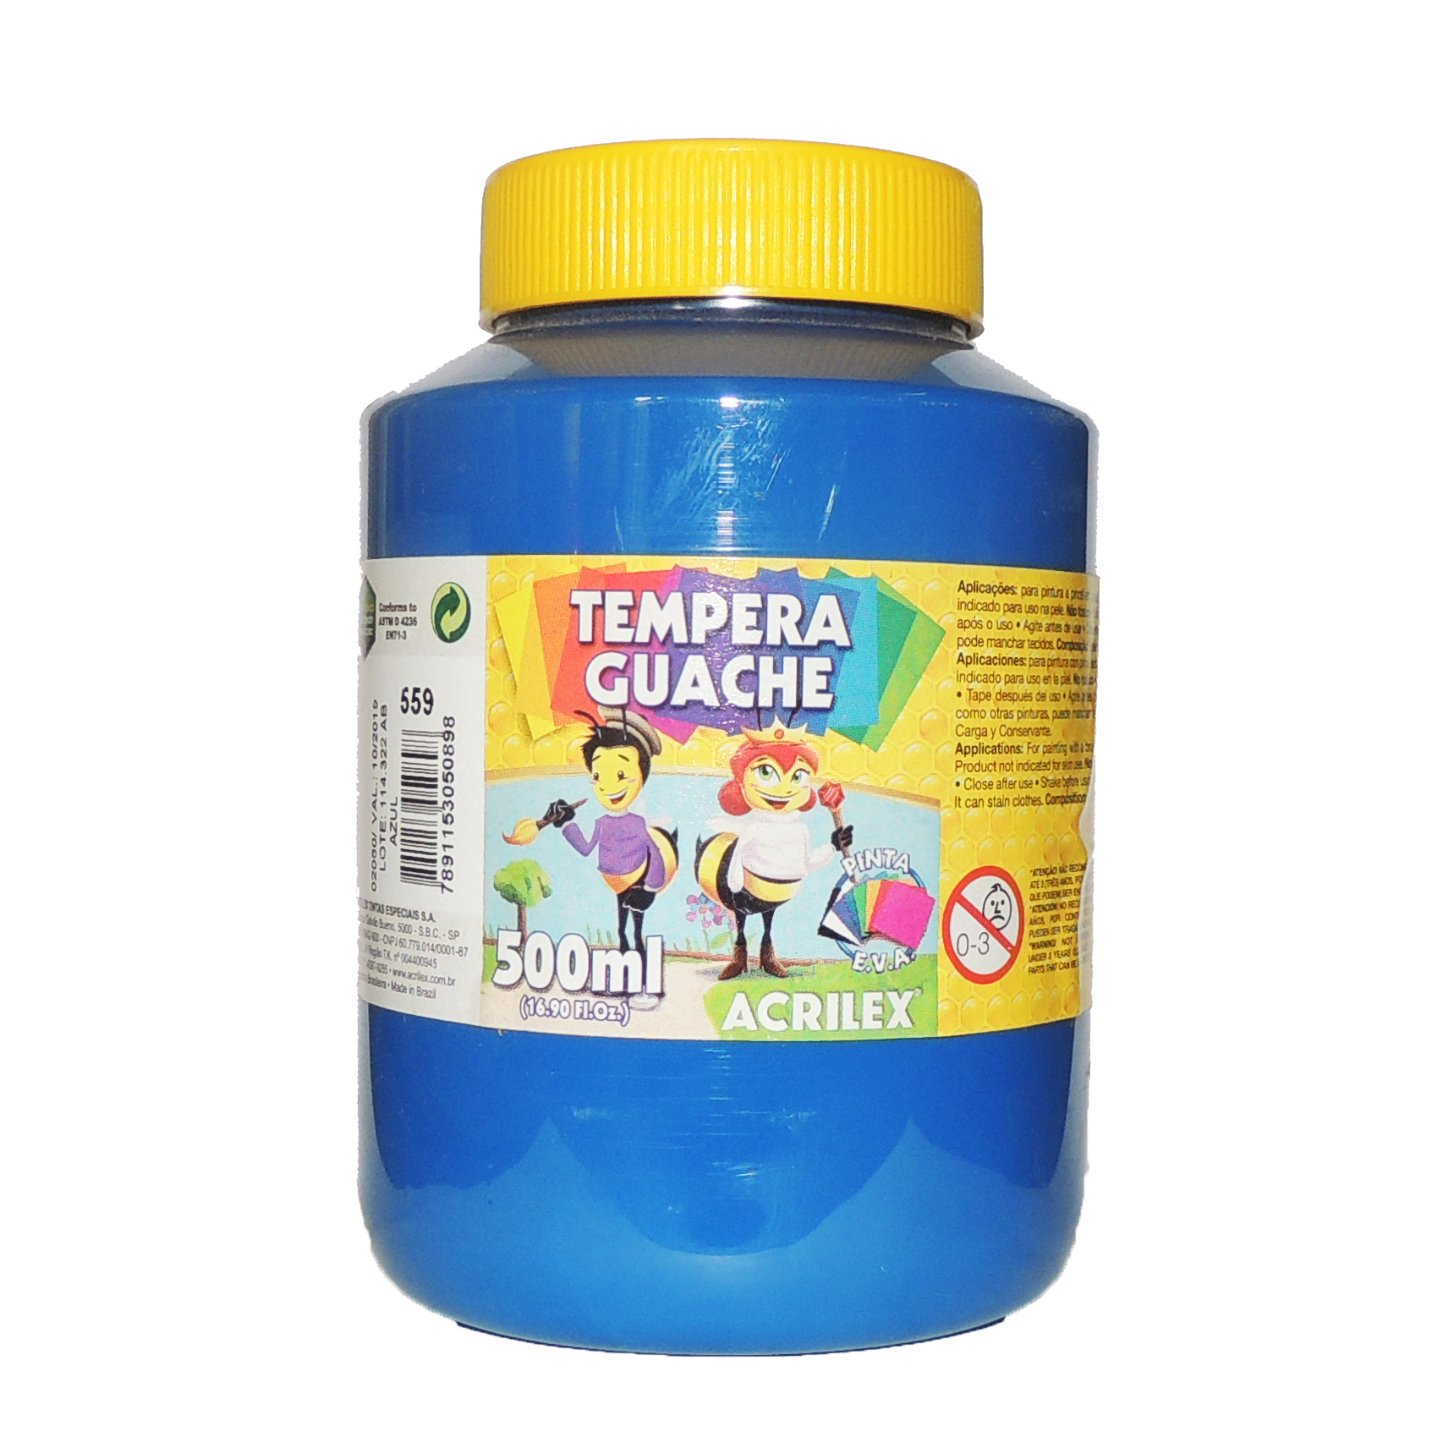 tempera-guache-500-ml-559-azul